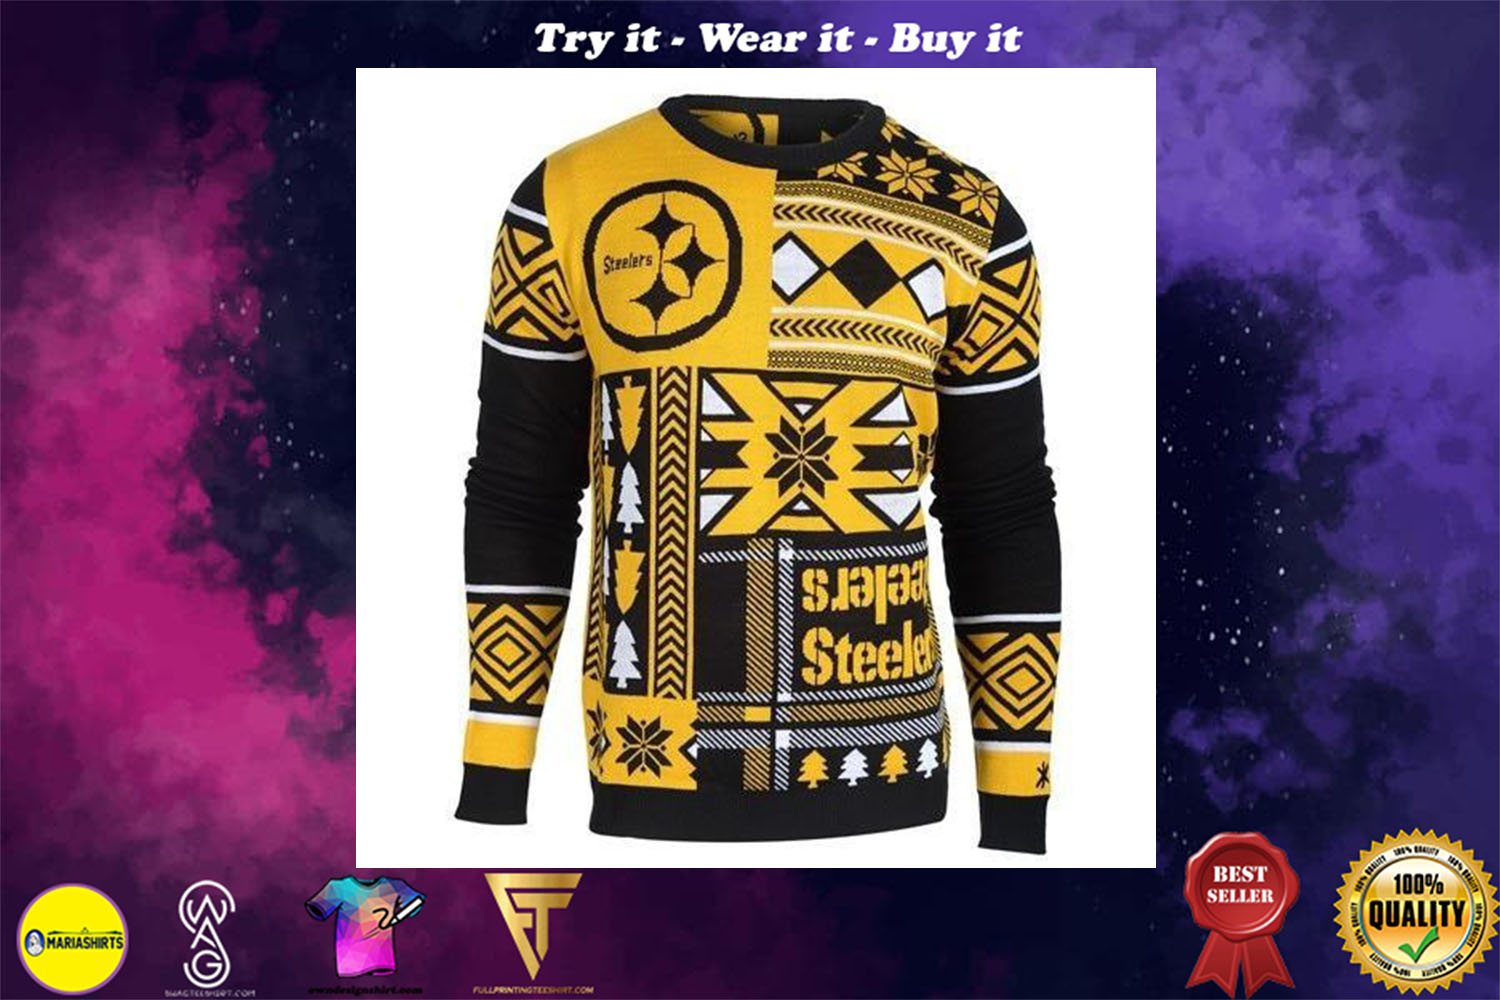 [special edition] pittsburgh steelers patches ugly christmas sweater - maria